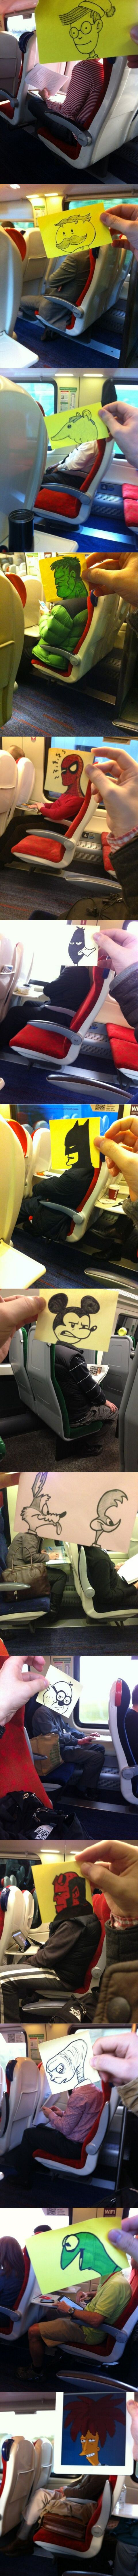 14 montages photos avec un post-it